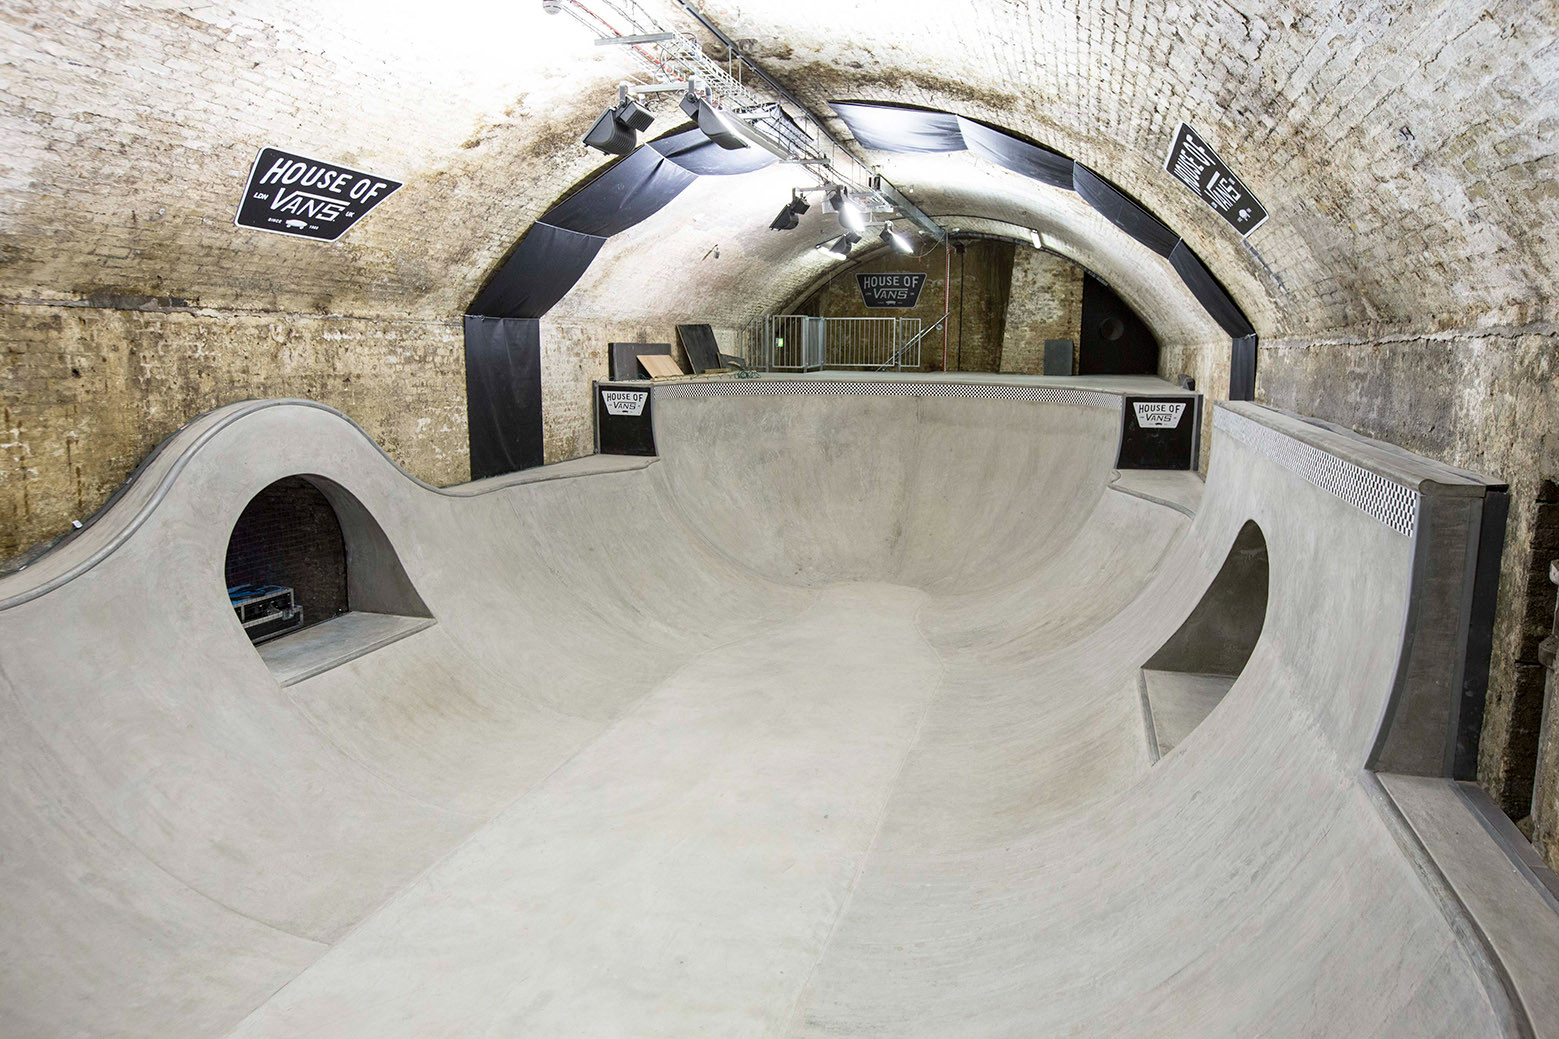 House_of_Vans_London_Skatepark_(9)